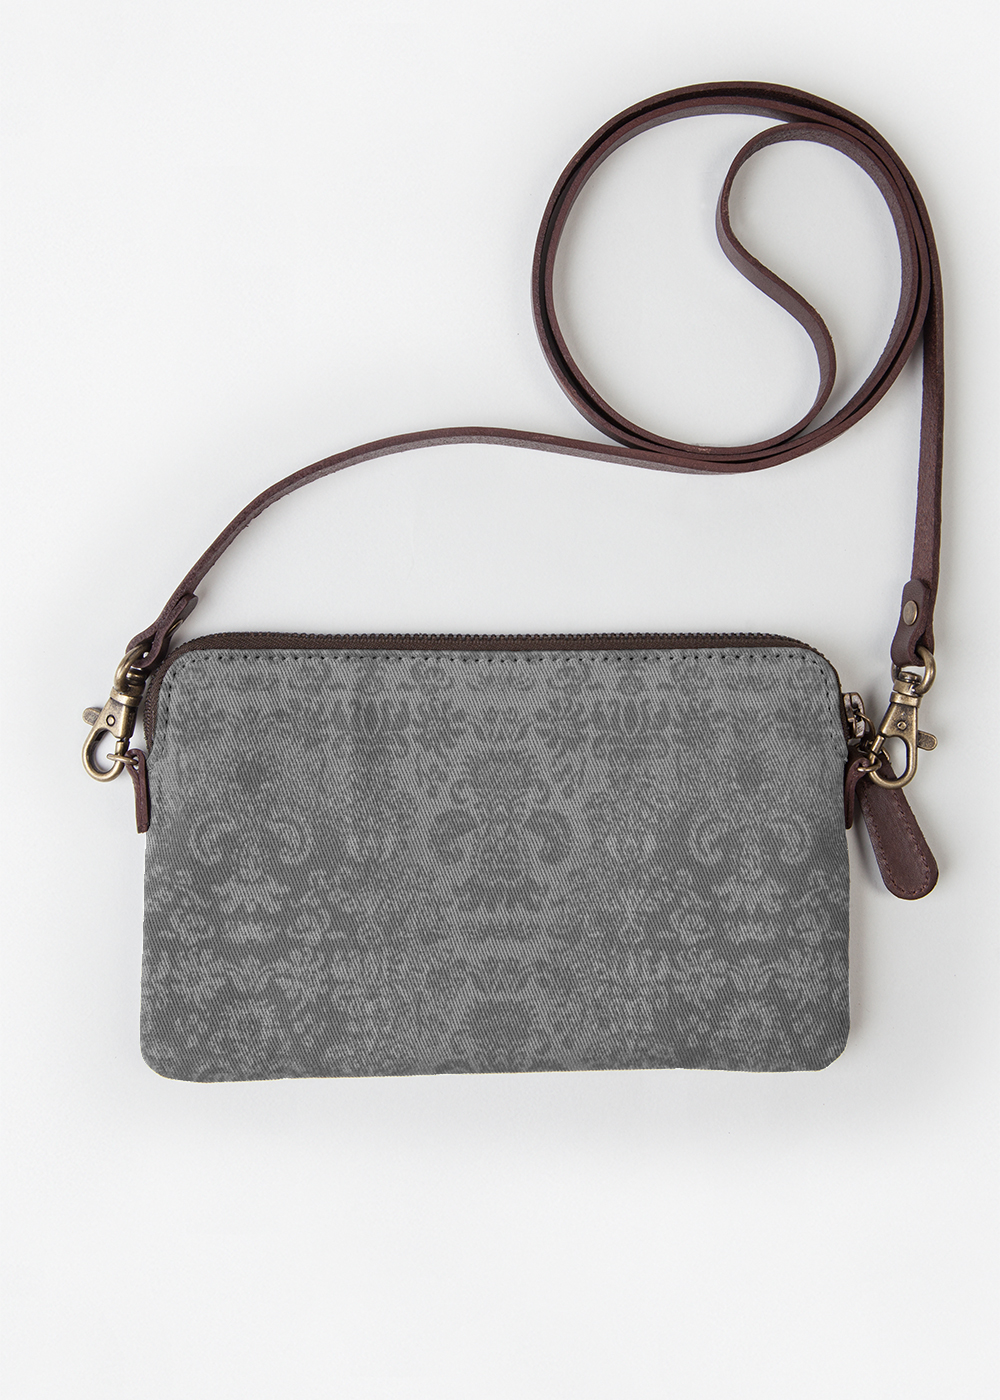 VIDA Statement Clutch - Snow day by VIDA